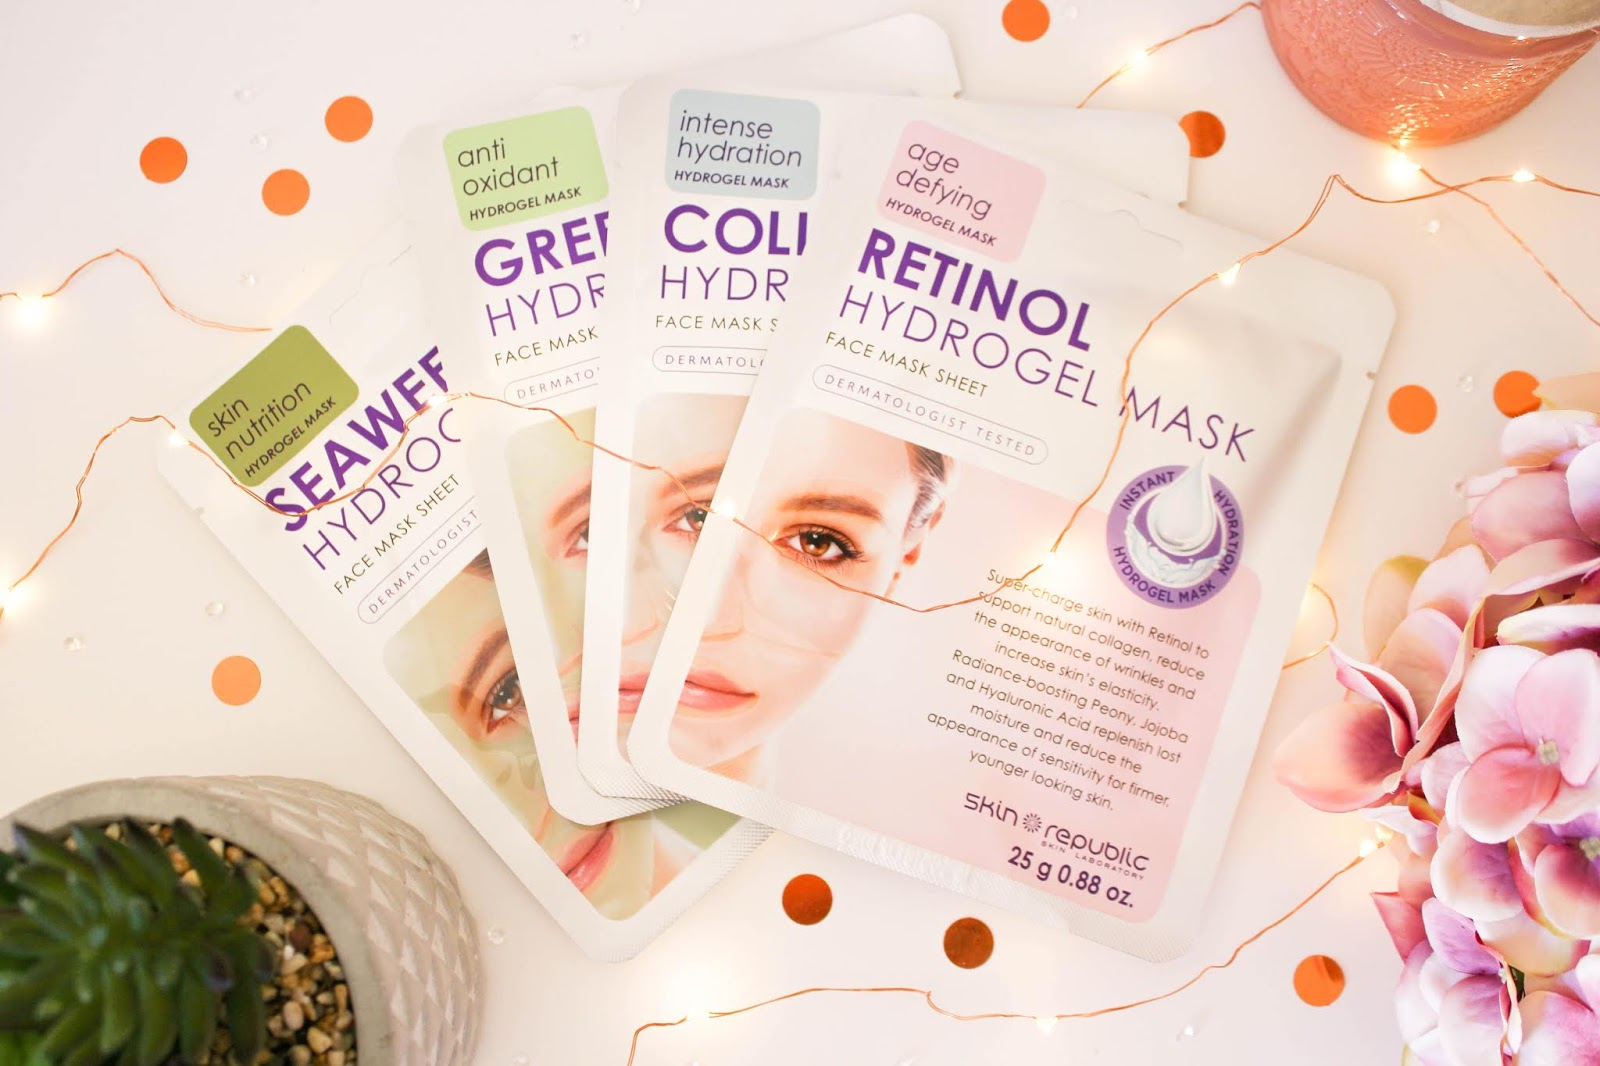 New Hydrogel Sheet Masks From Skin Republic